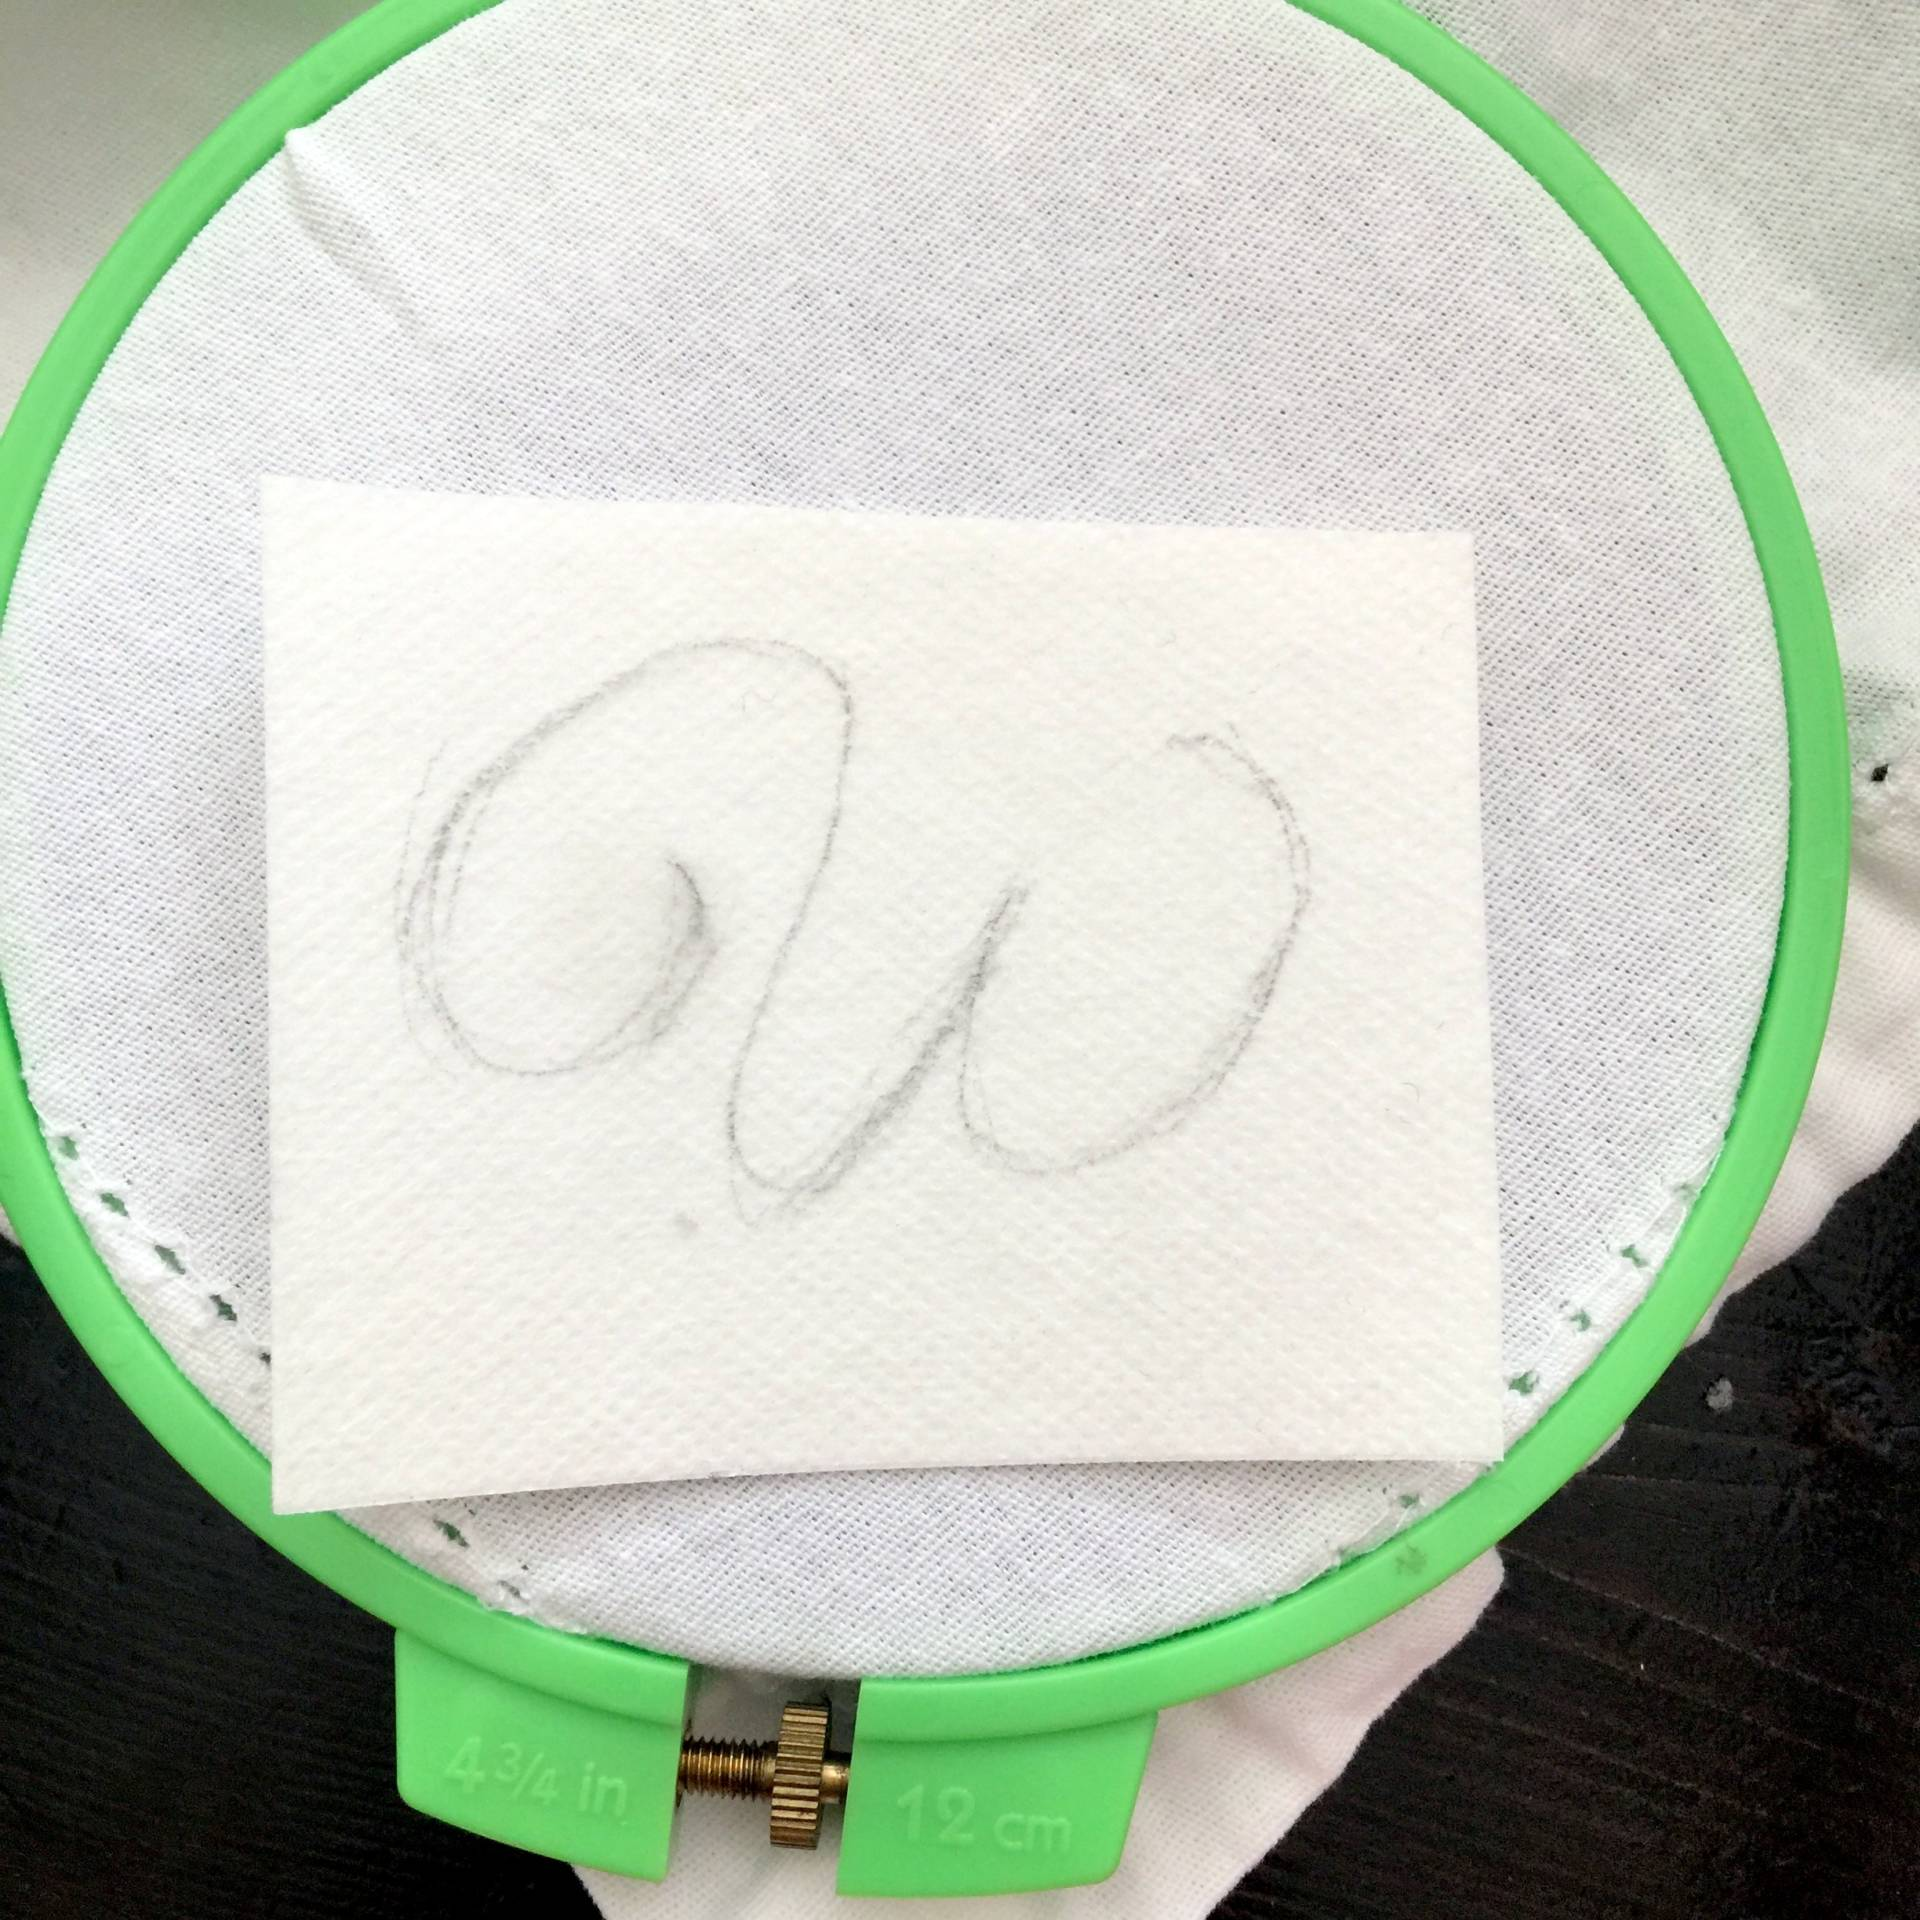 cut the paper to fit in the embroidery hoop